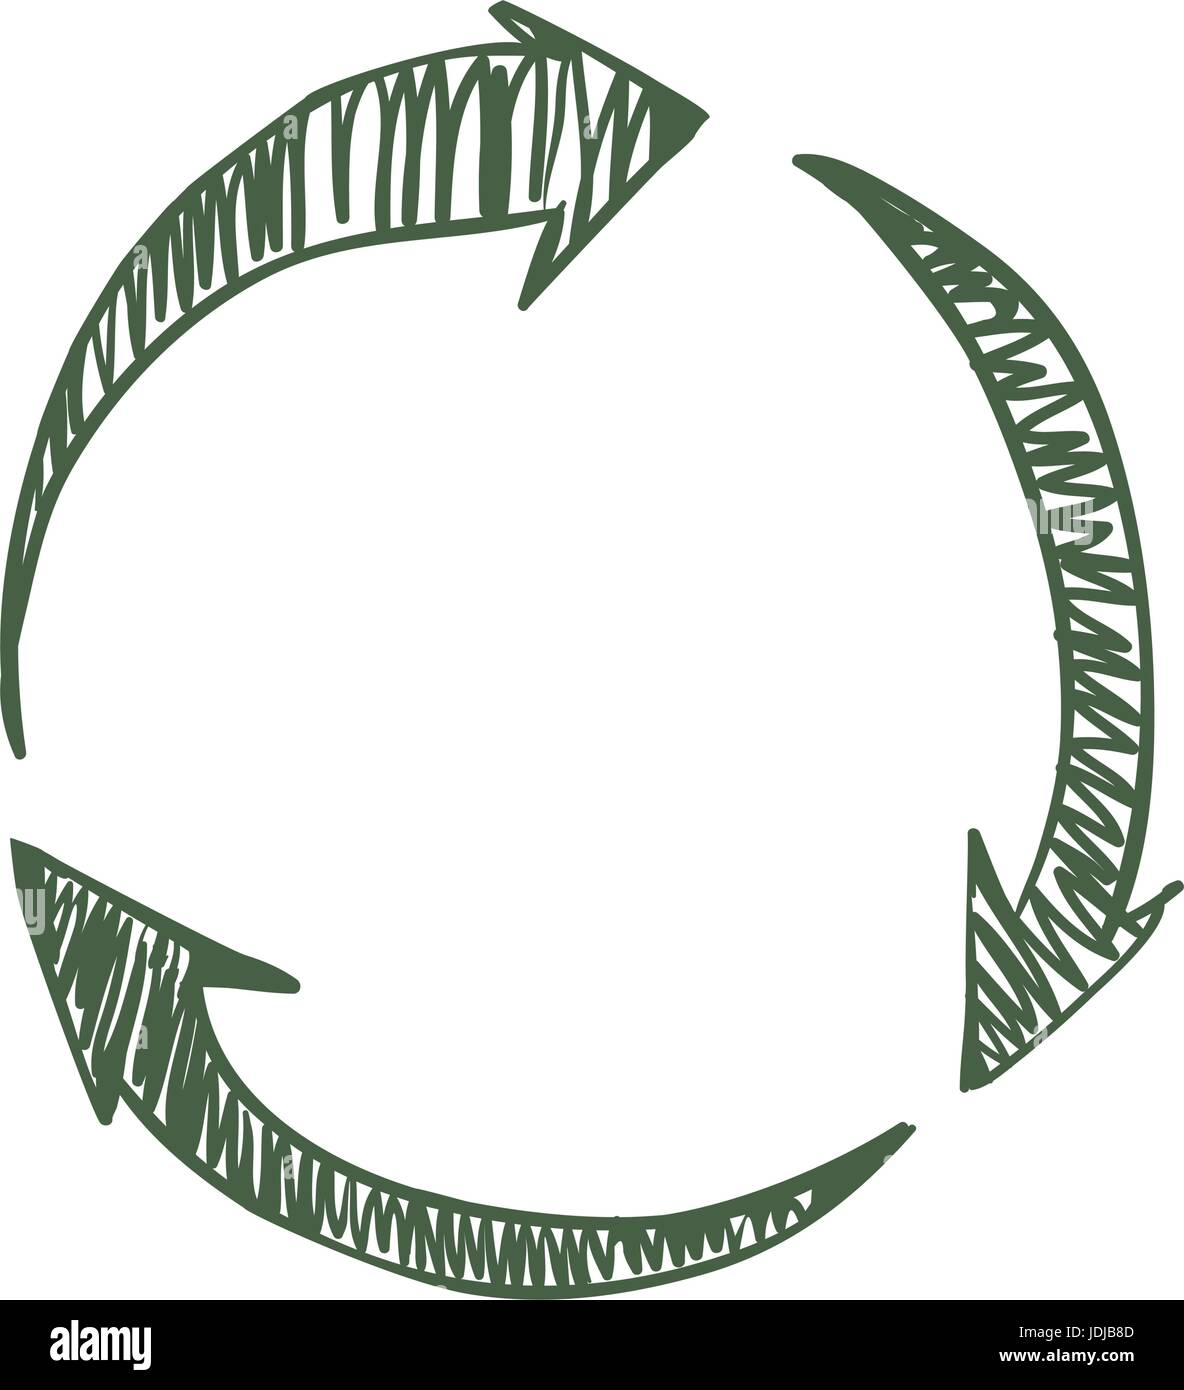 Reduce Reuse Recycle Stock Vector Images Alamy